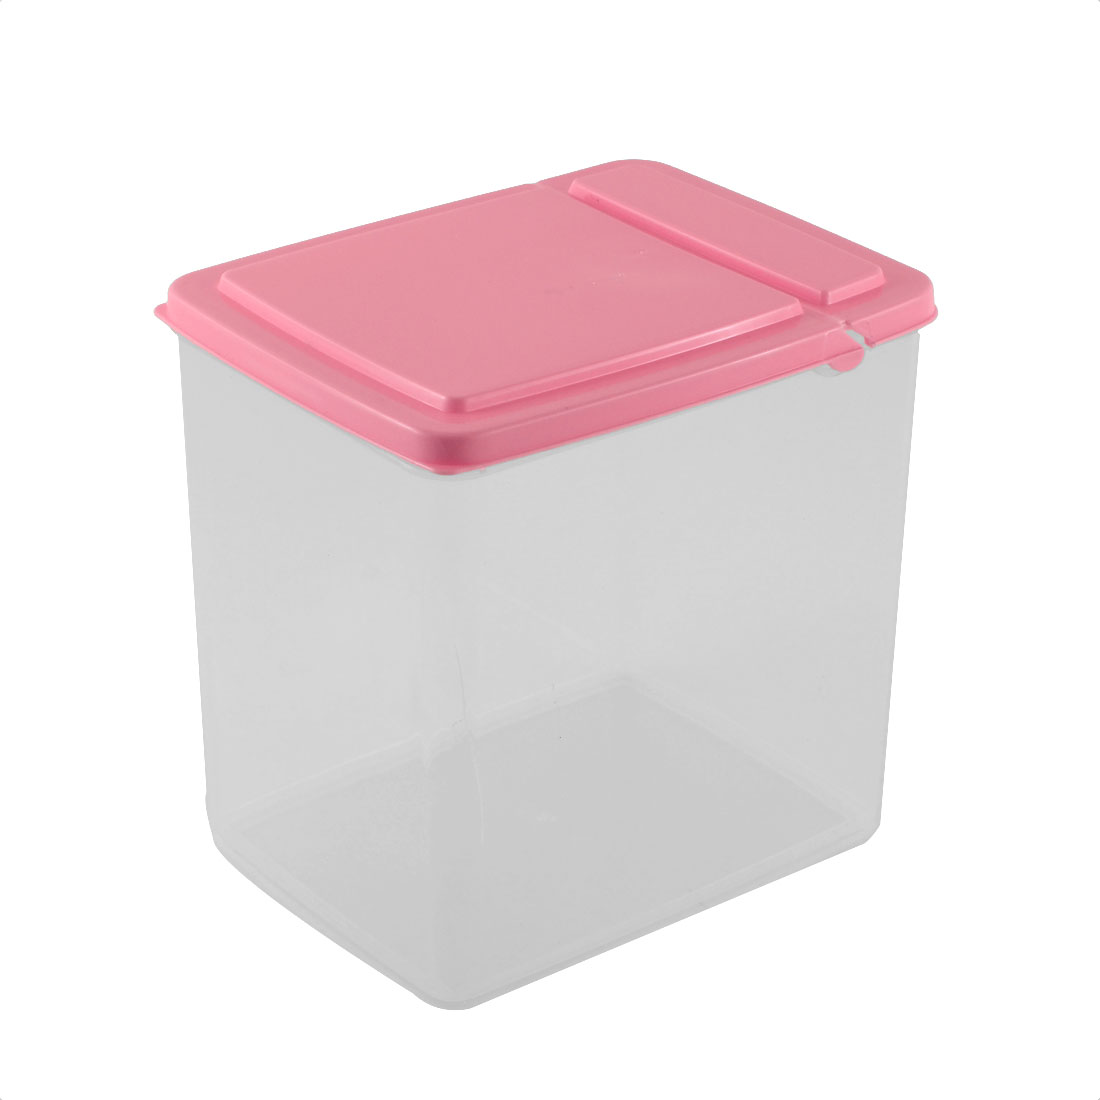 Kitchen Pantry Refrigerator Freezer Plastic Transparent Storage Box Organizer 15x11x16cm Pink